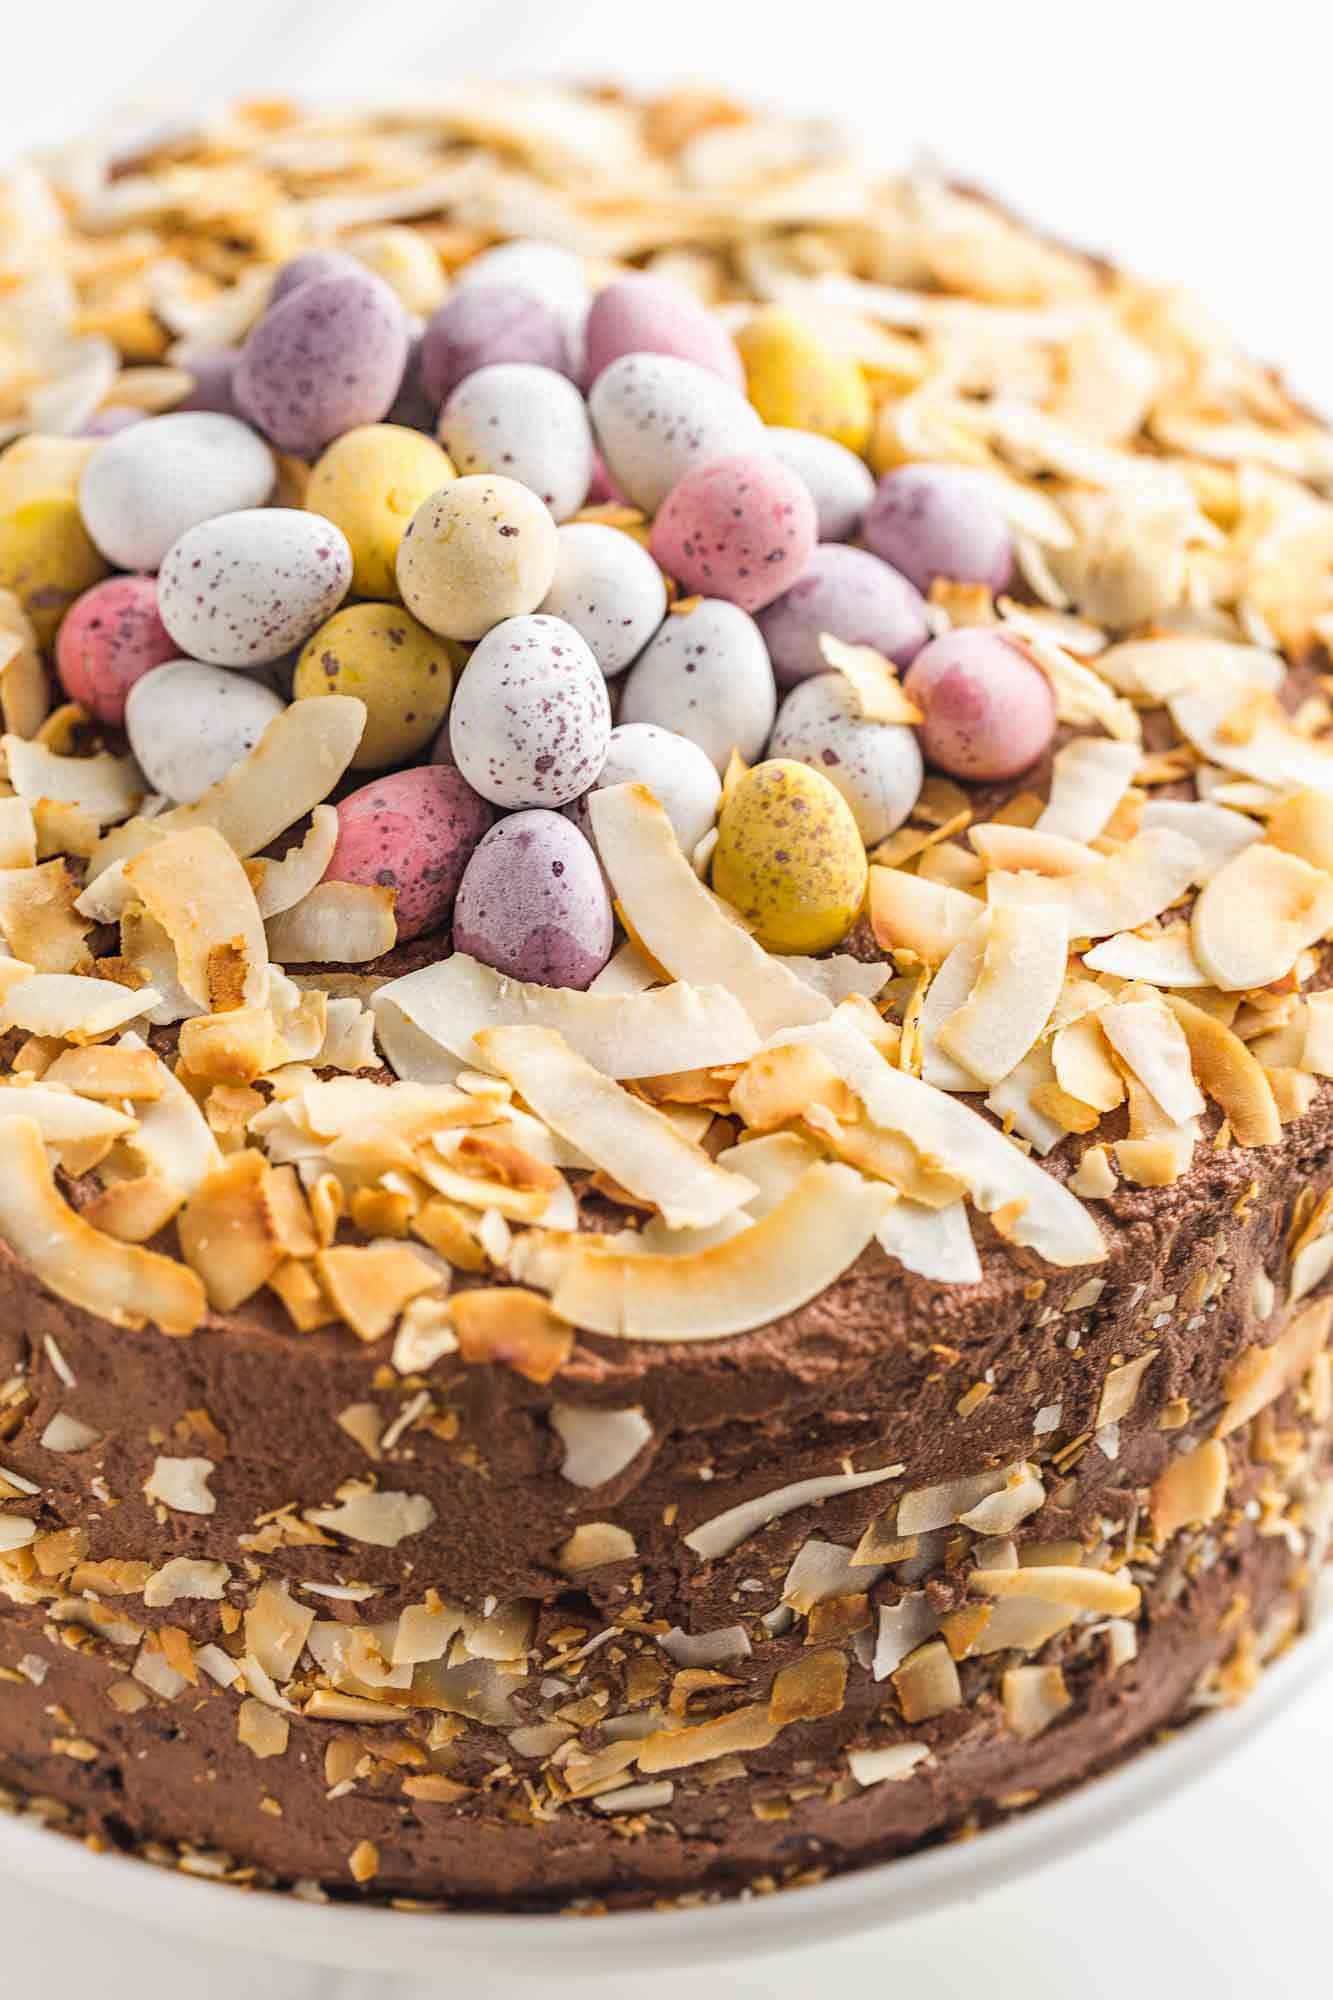 Close up shot of chocolate easter nest cake